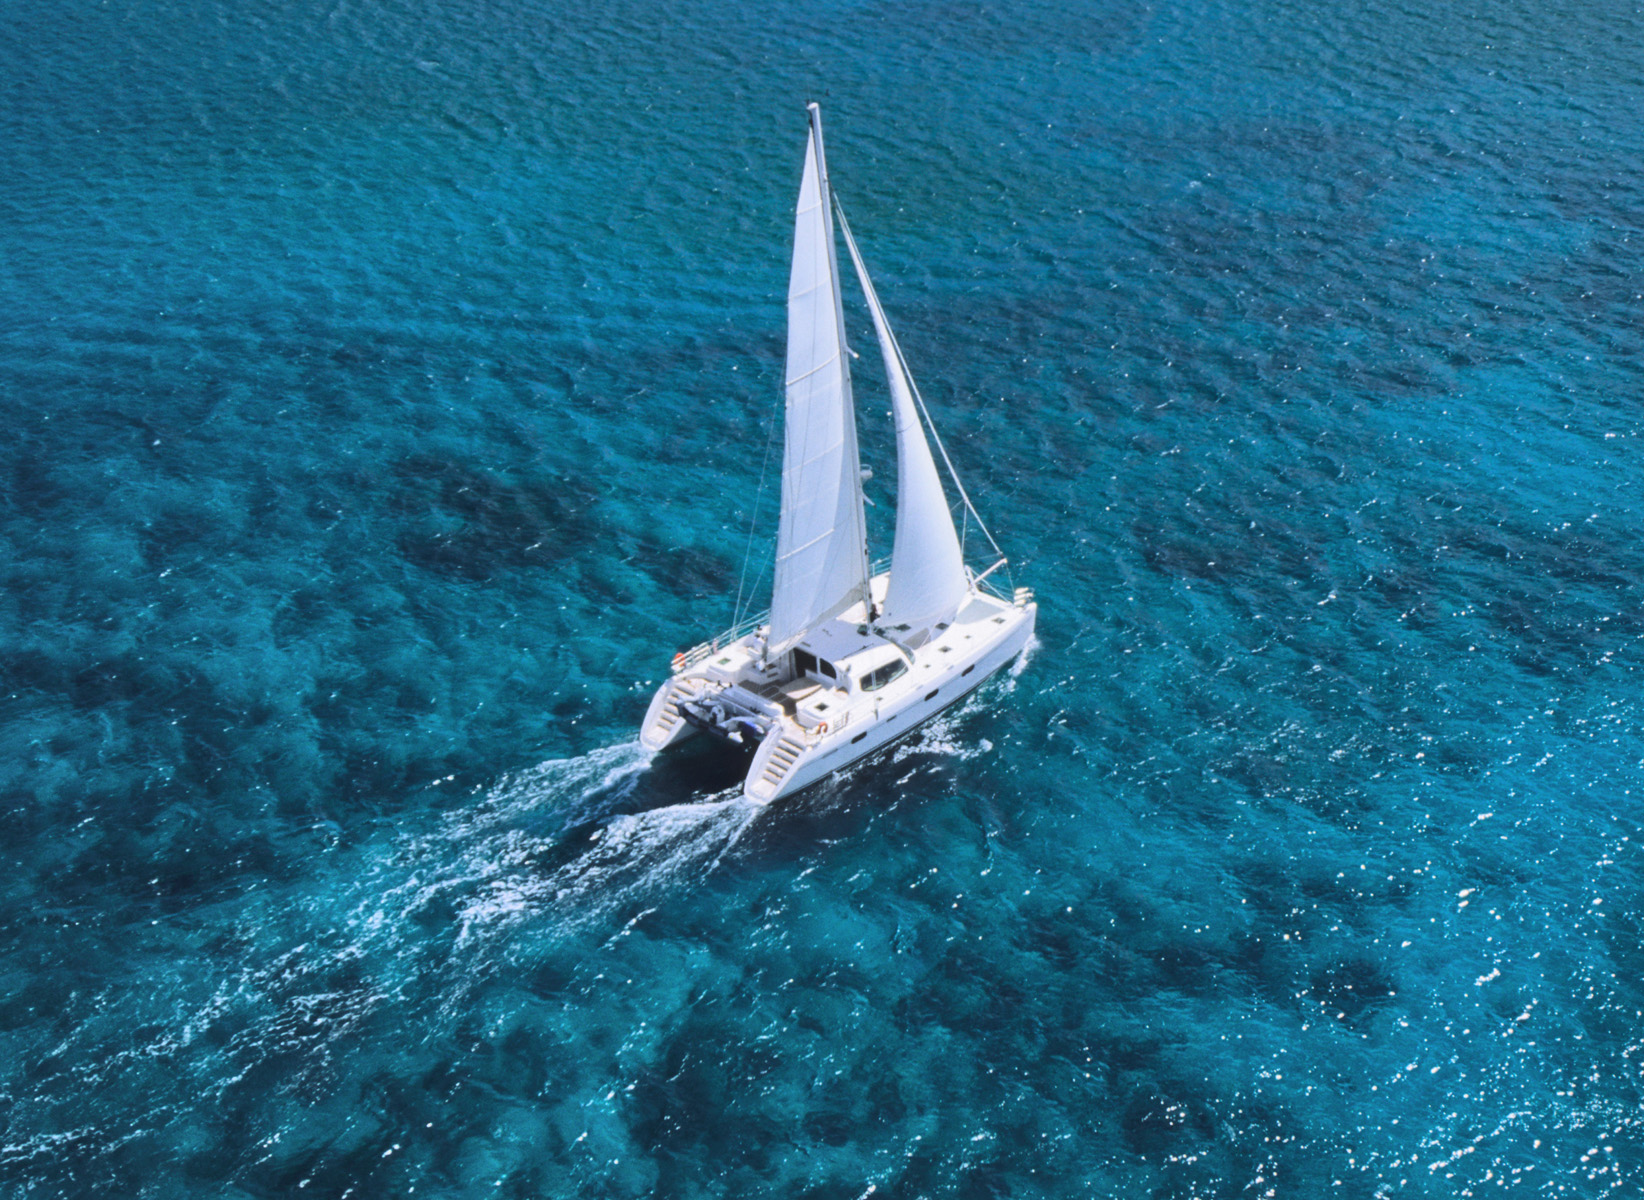 OCEAN MED Yacht Charter Details Luxury Crewed Sailing